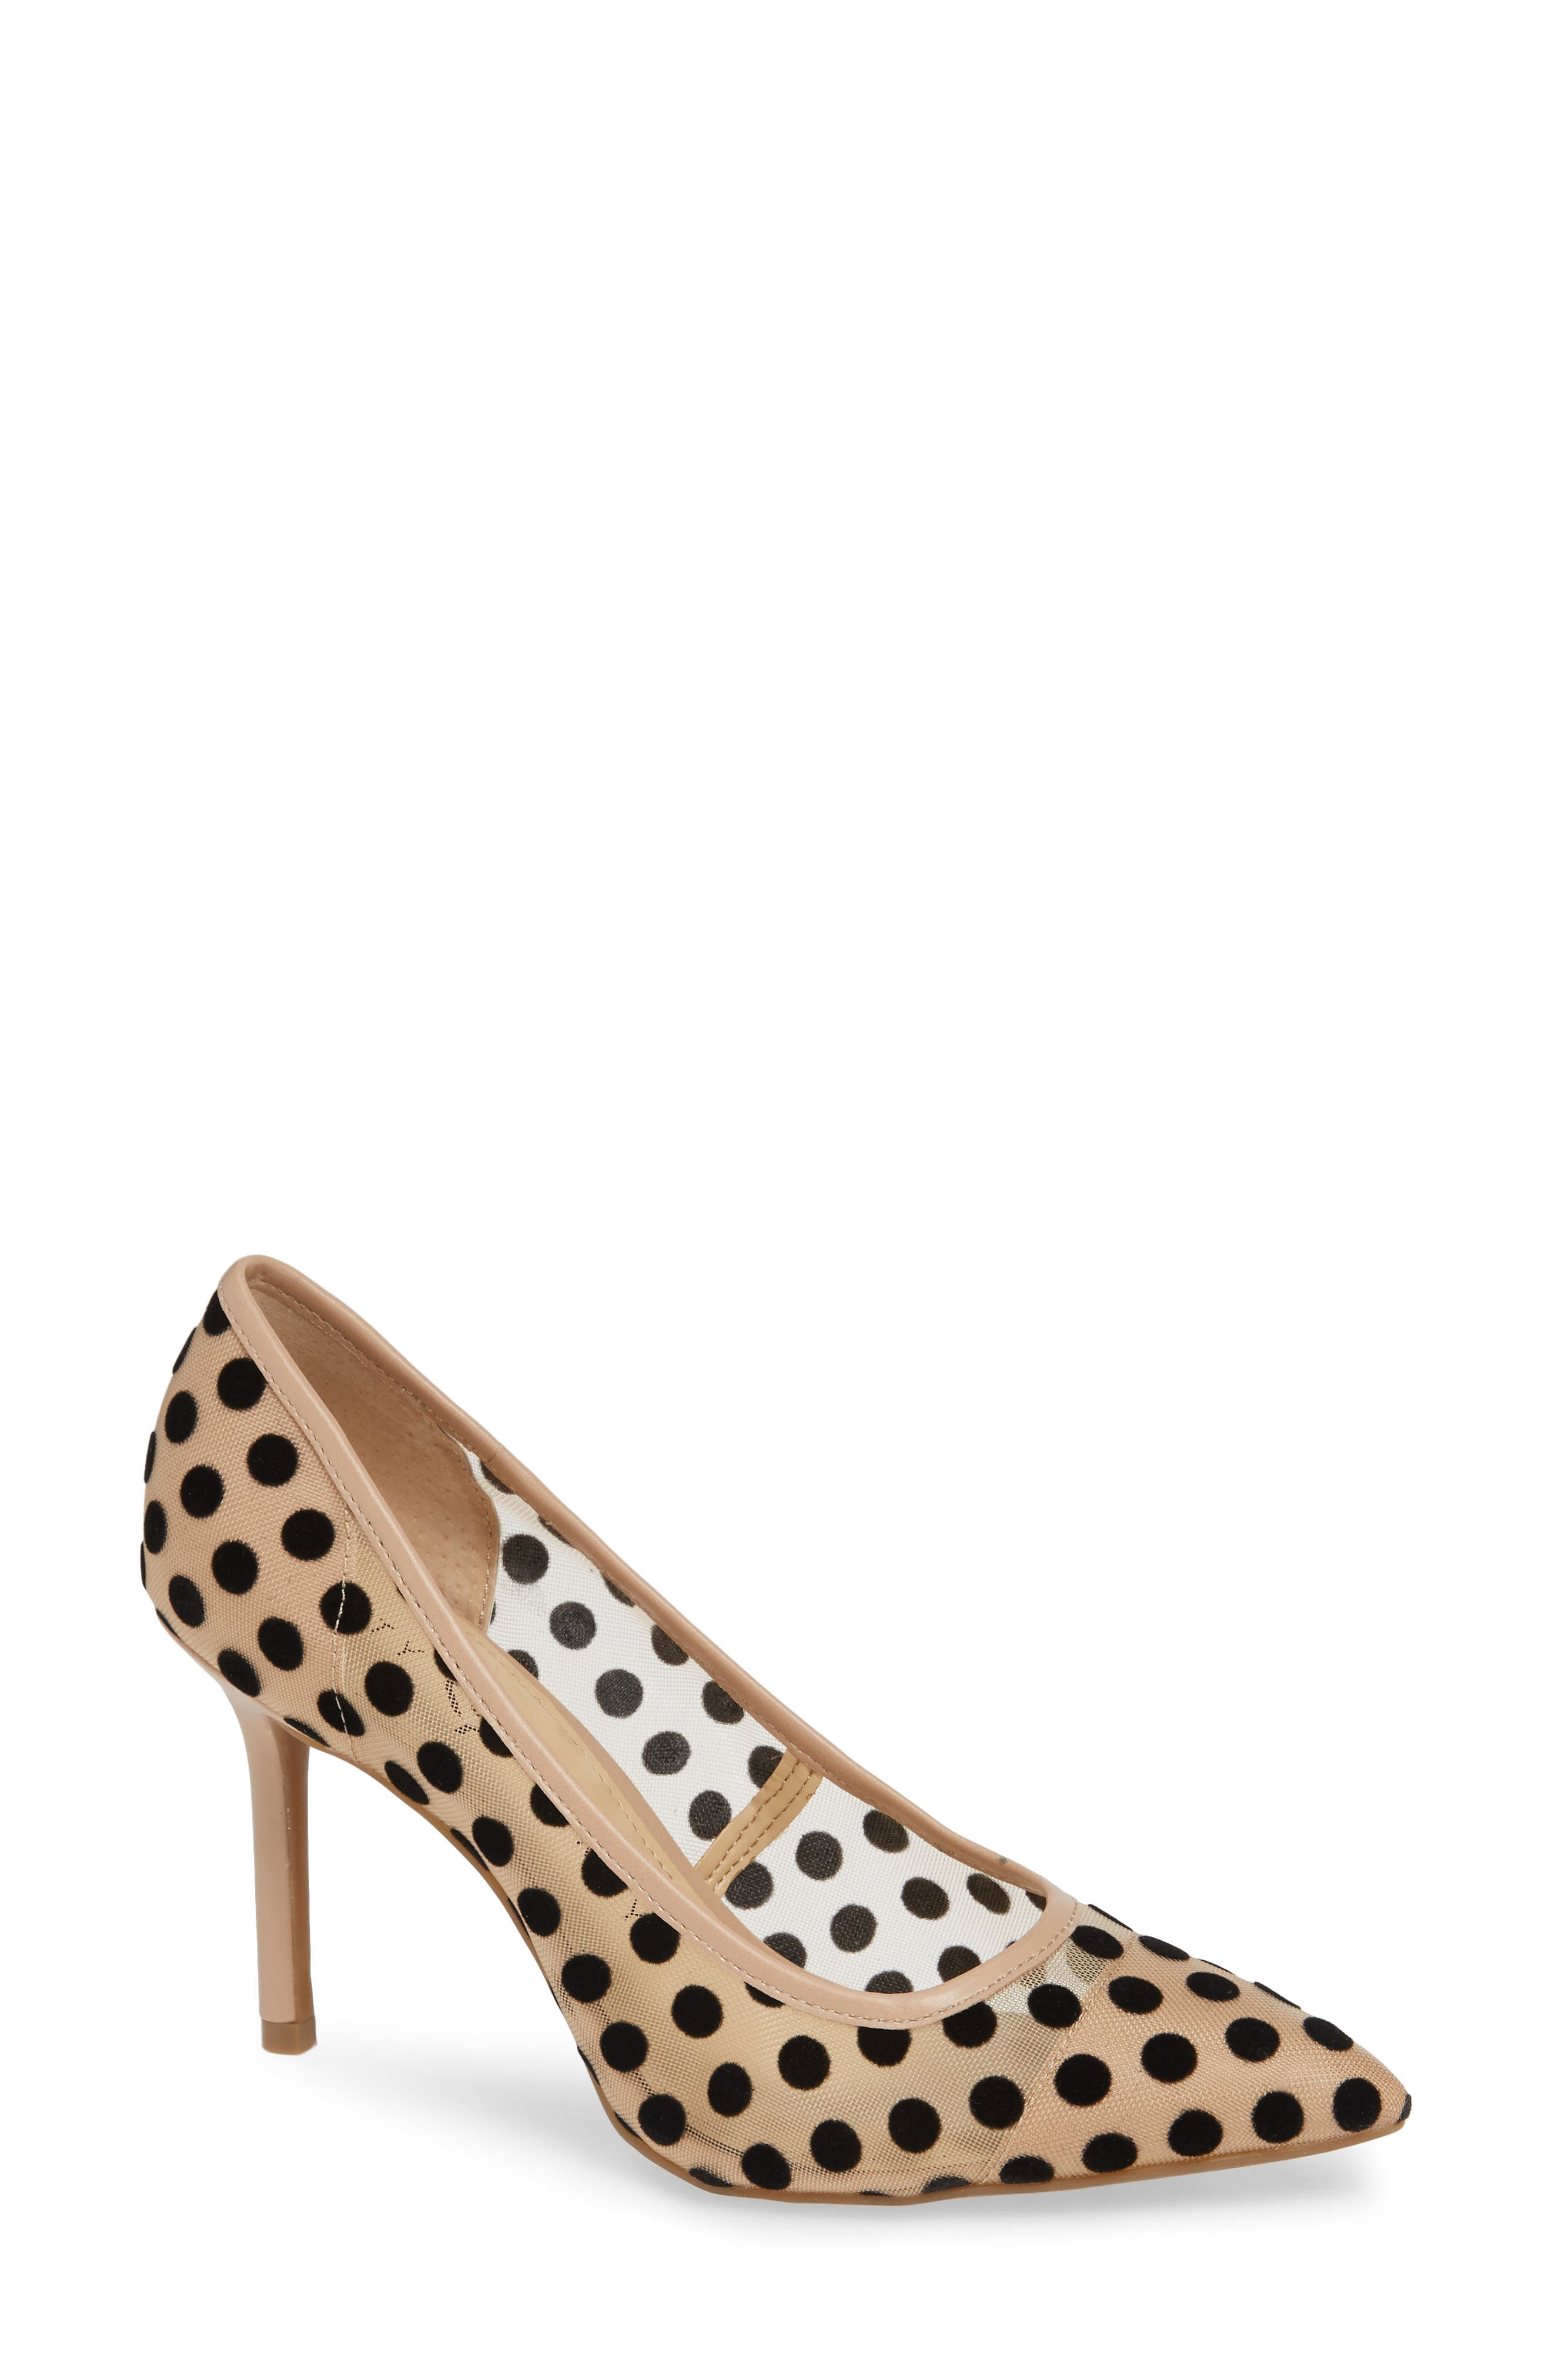 KATY PERRY Pointy Toe Pump in Polka Dot Nude